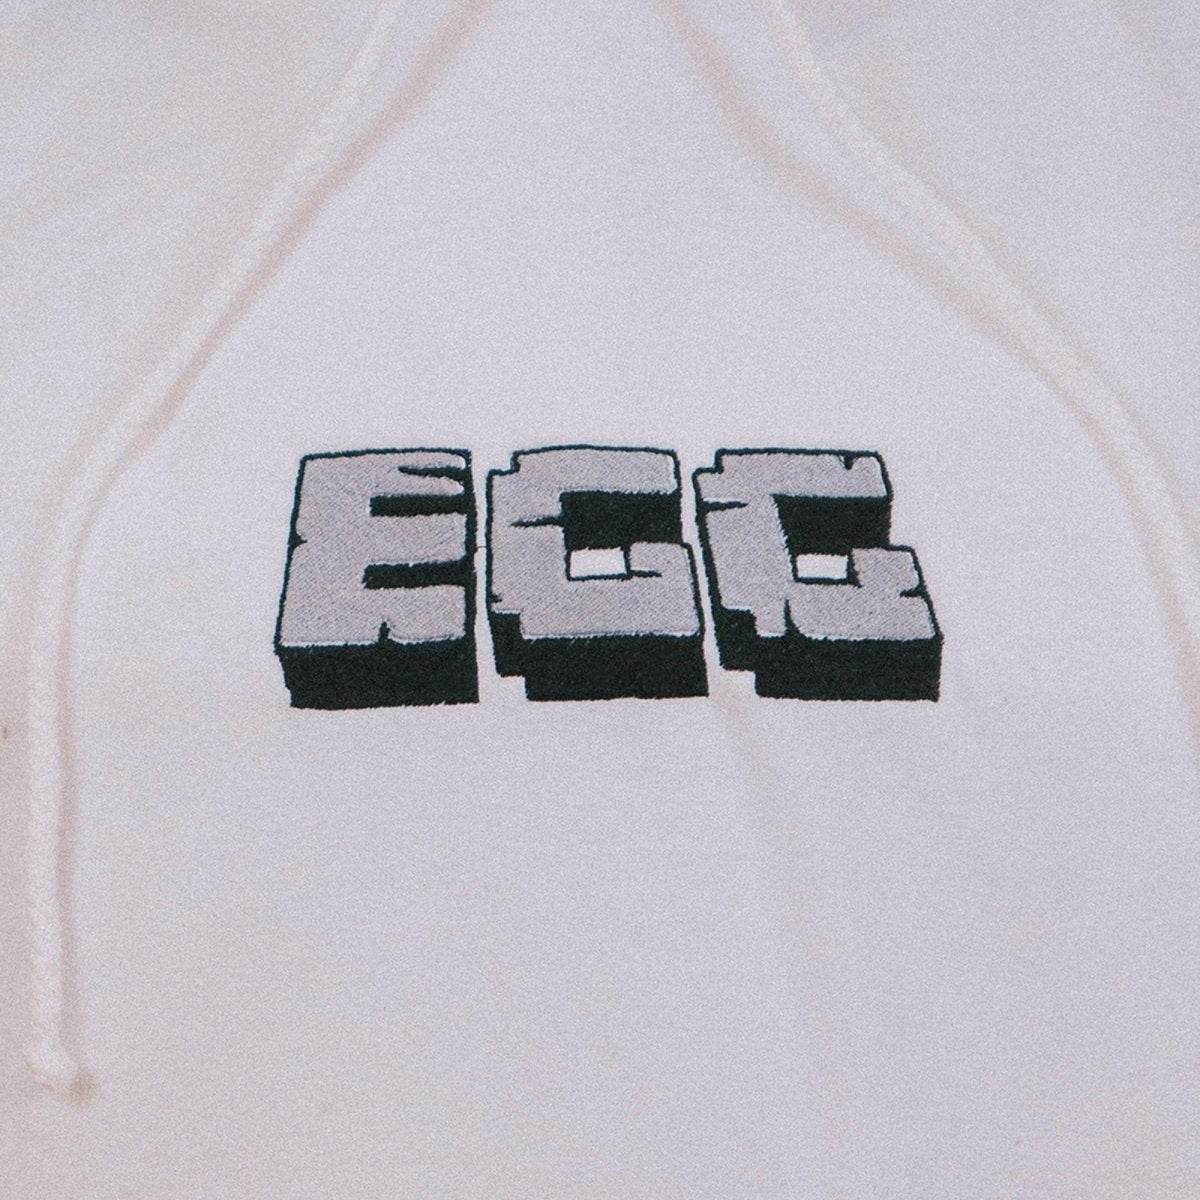 Epic Gamer Grandma - Minecraft EGG White Embroidered Hoodie - The Fresh Stuff